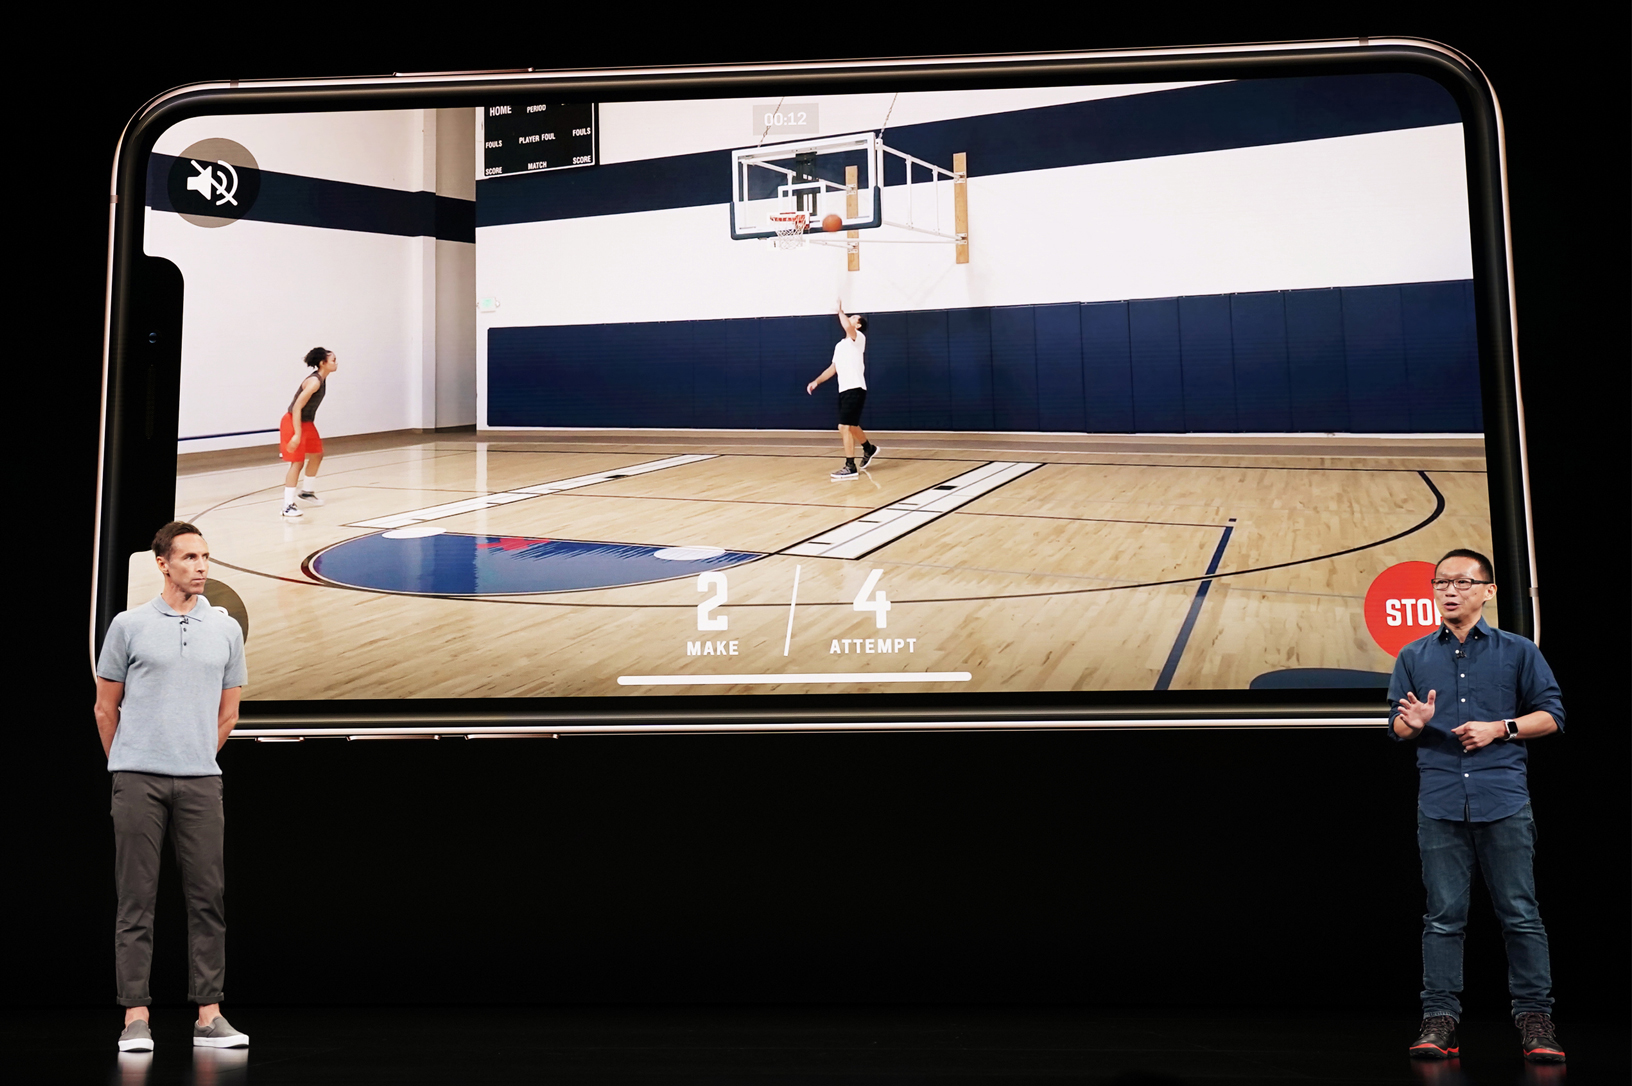 homecourt shot science ar update featured in iphone xs keynote now available